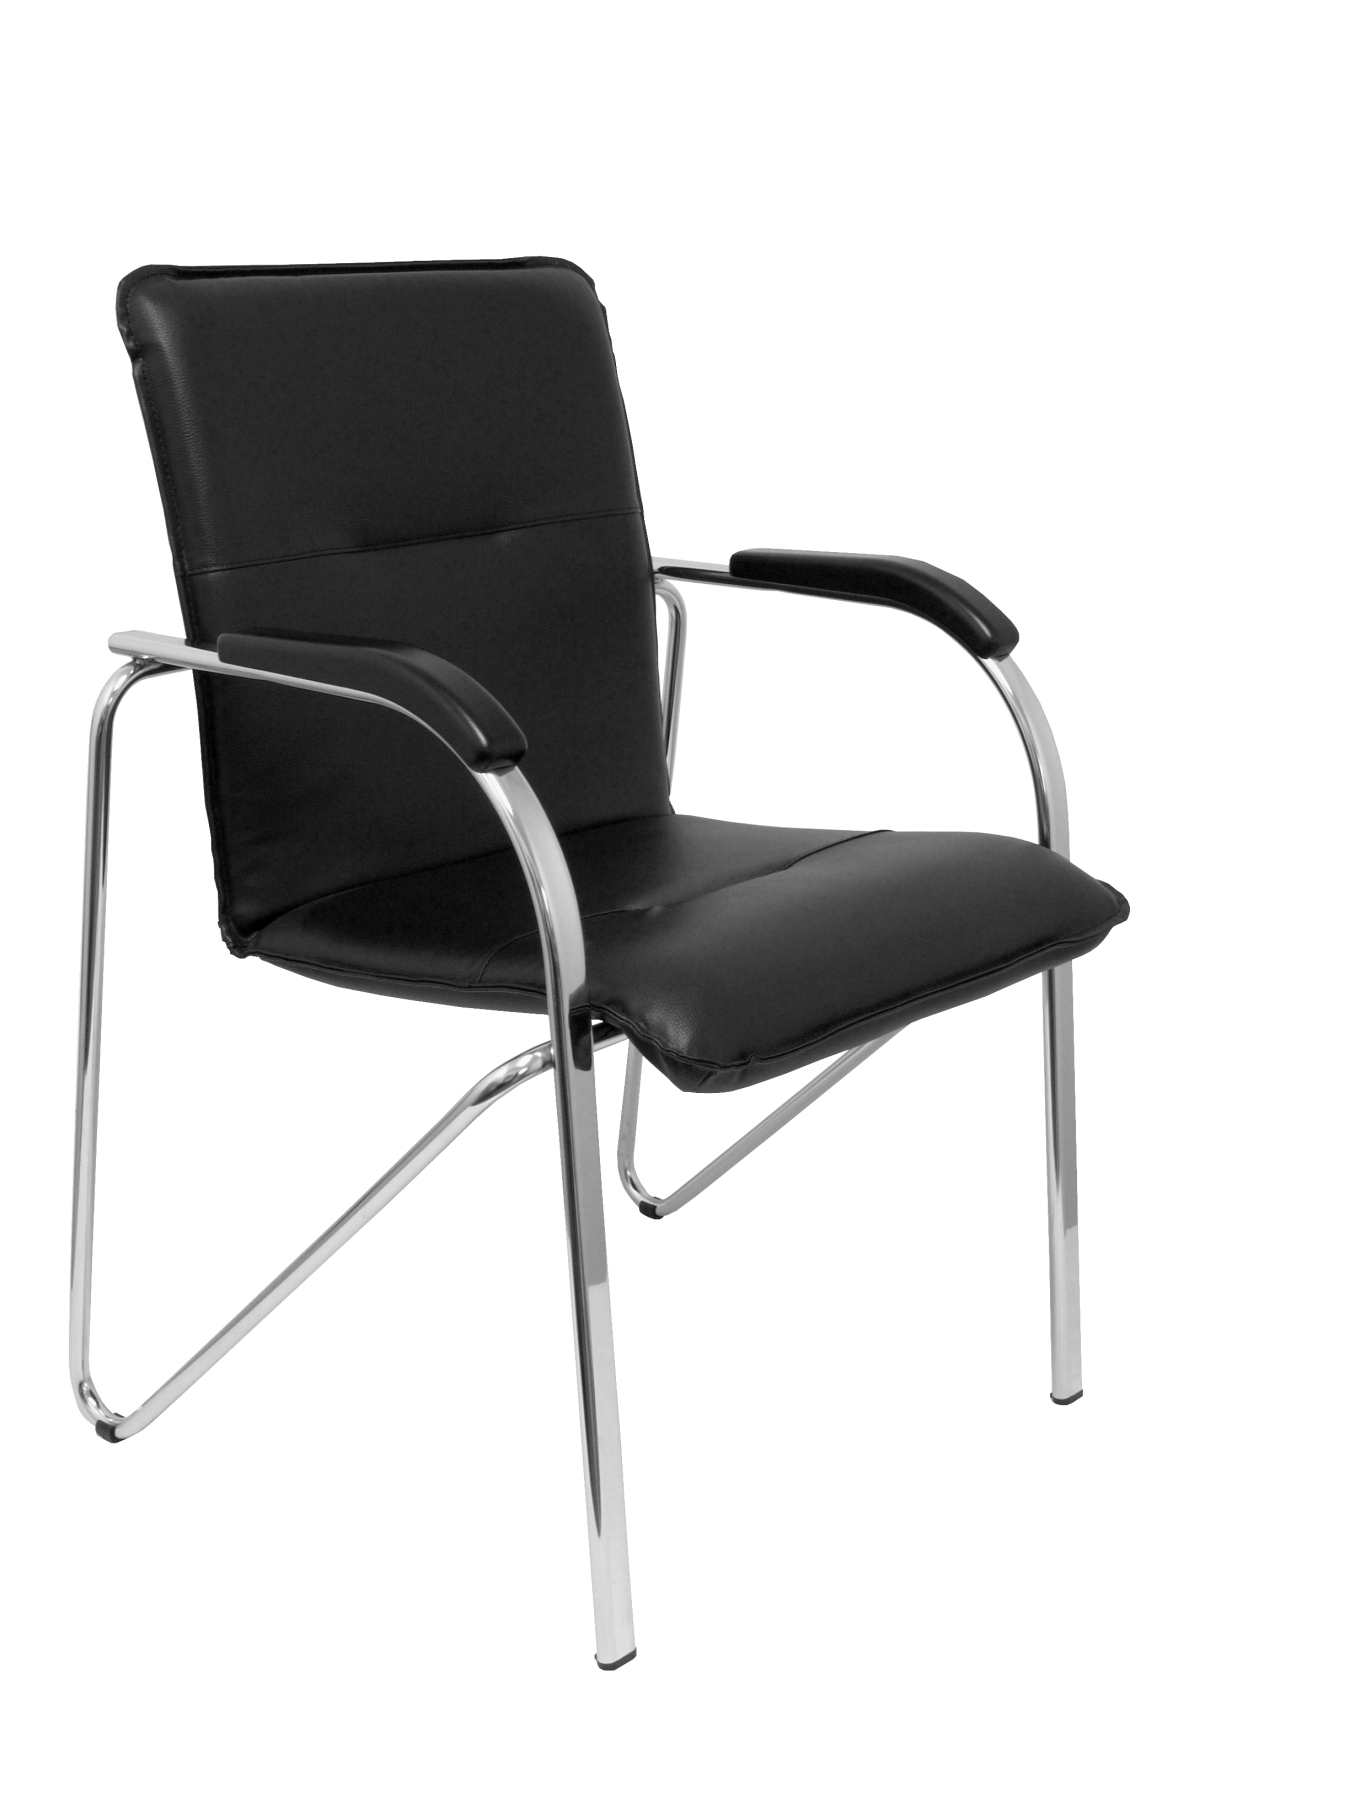 Visitor Chair 4's Topsy, With Arms And Chrome Bold-up Seat And Backstop Structure Upholstered In Tissue Similpiel Black PI